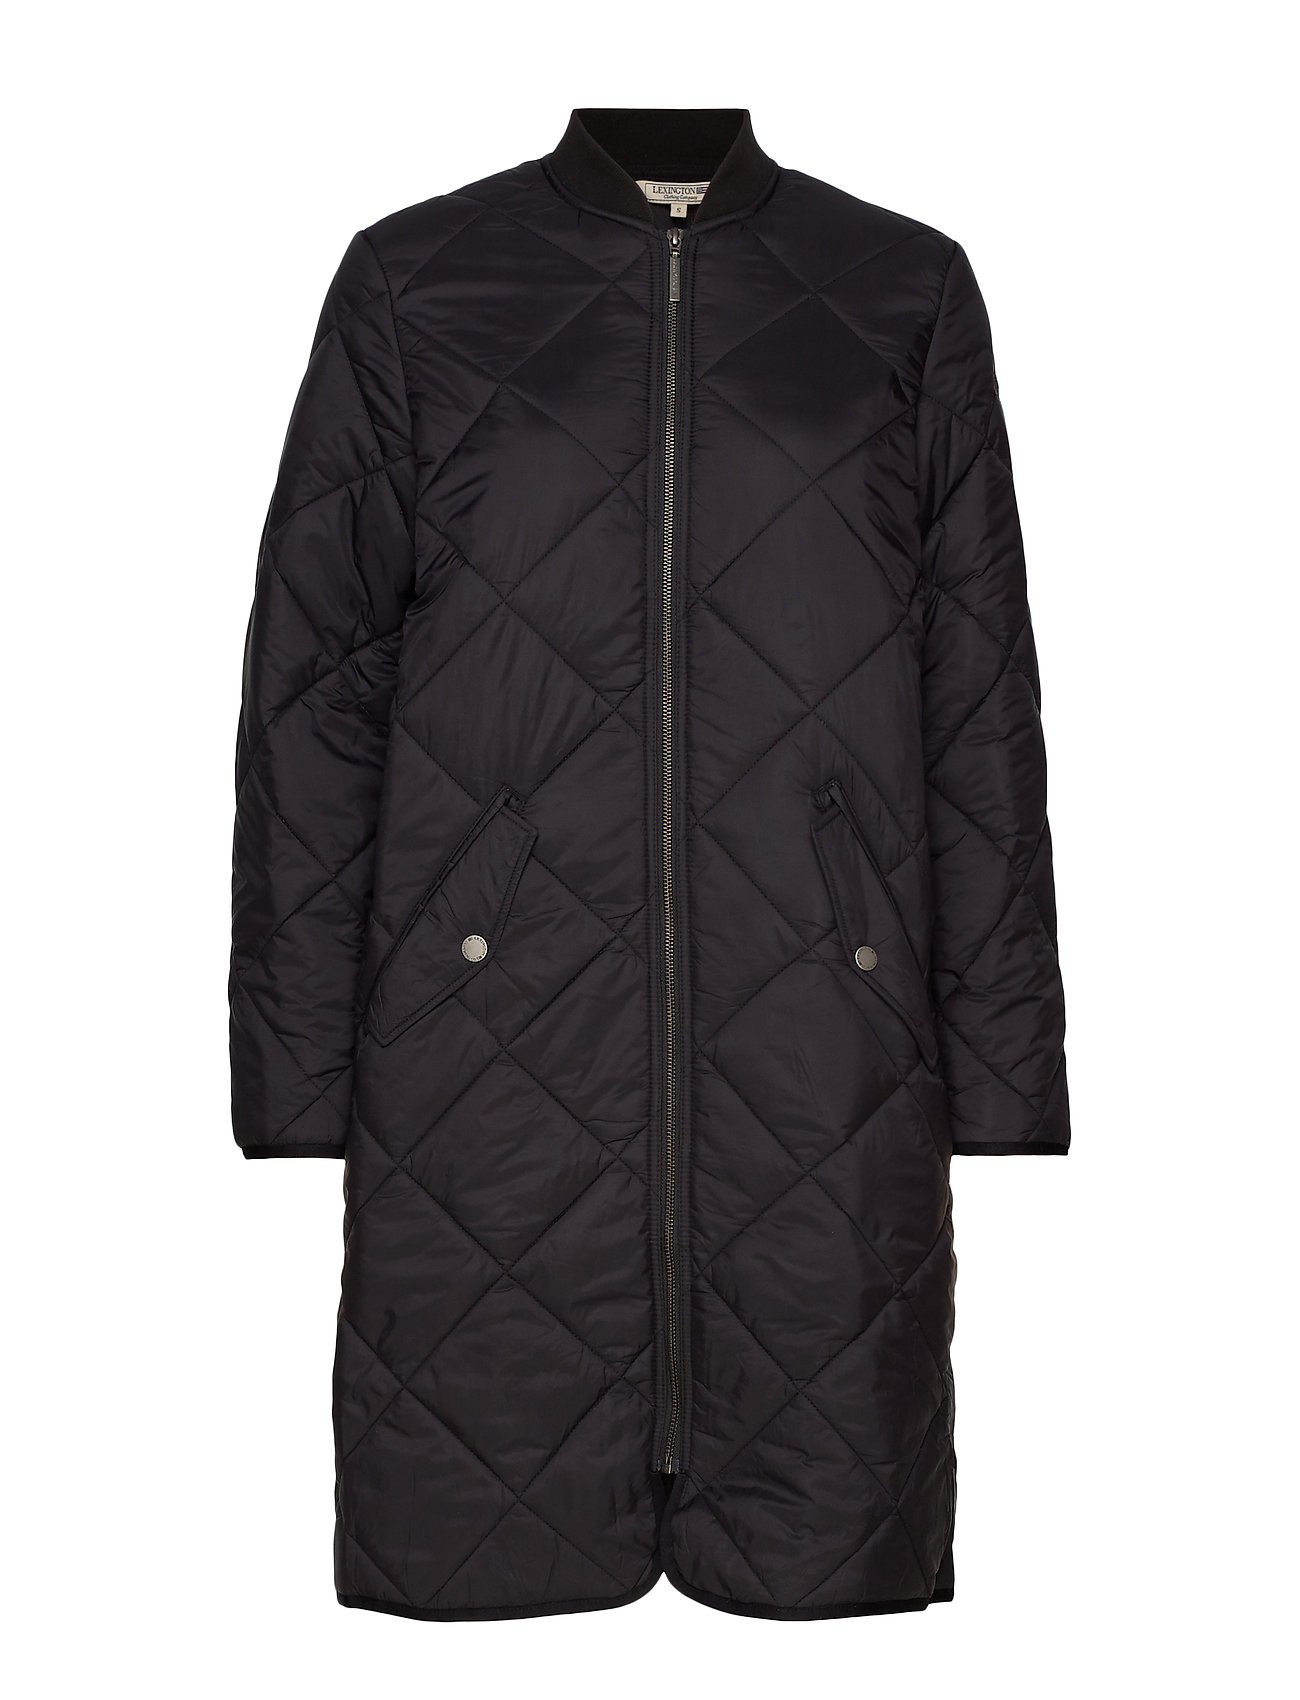 Lexington Clothing Livia Quilted Jacket - BLACK